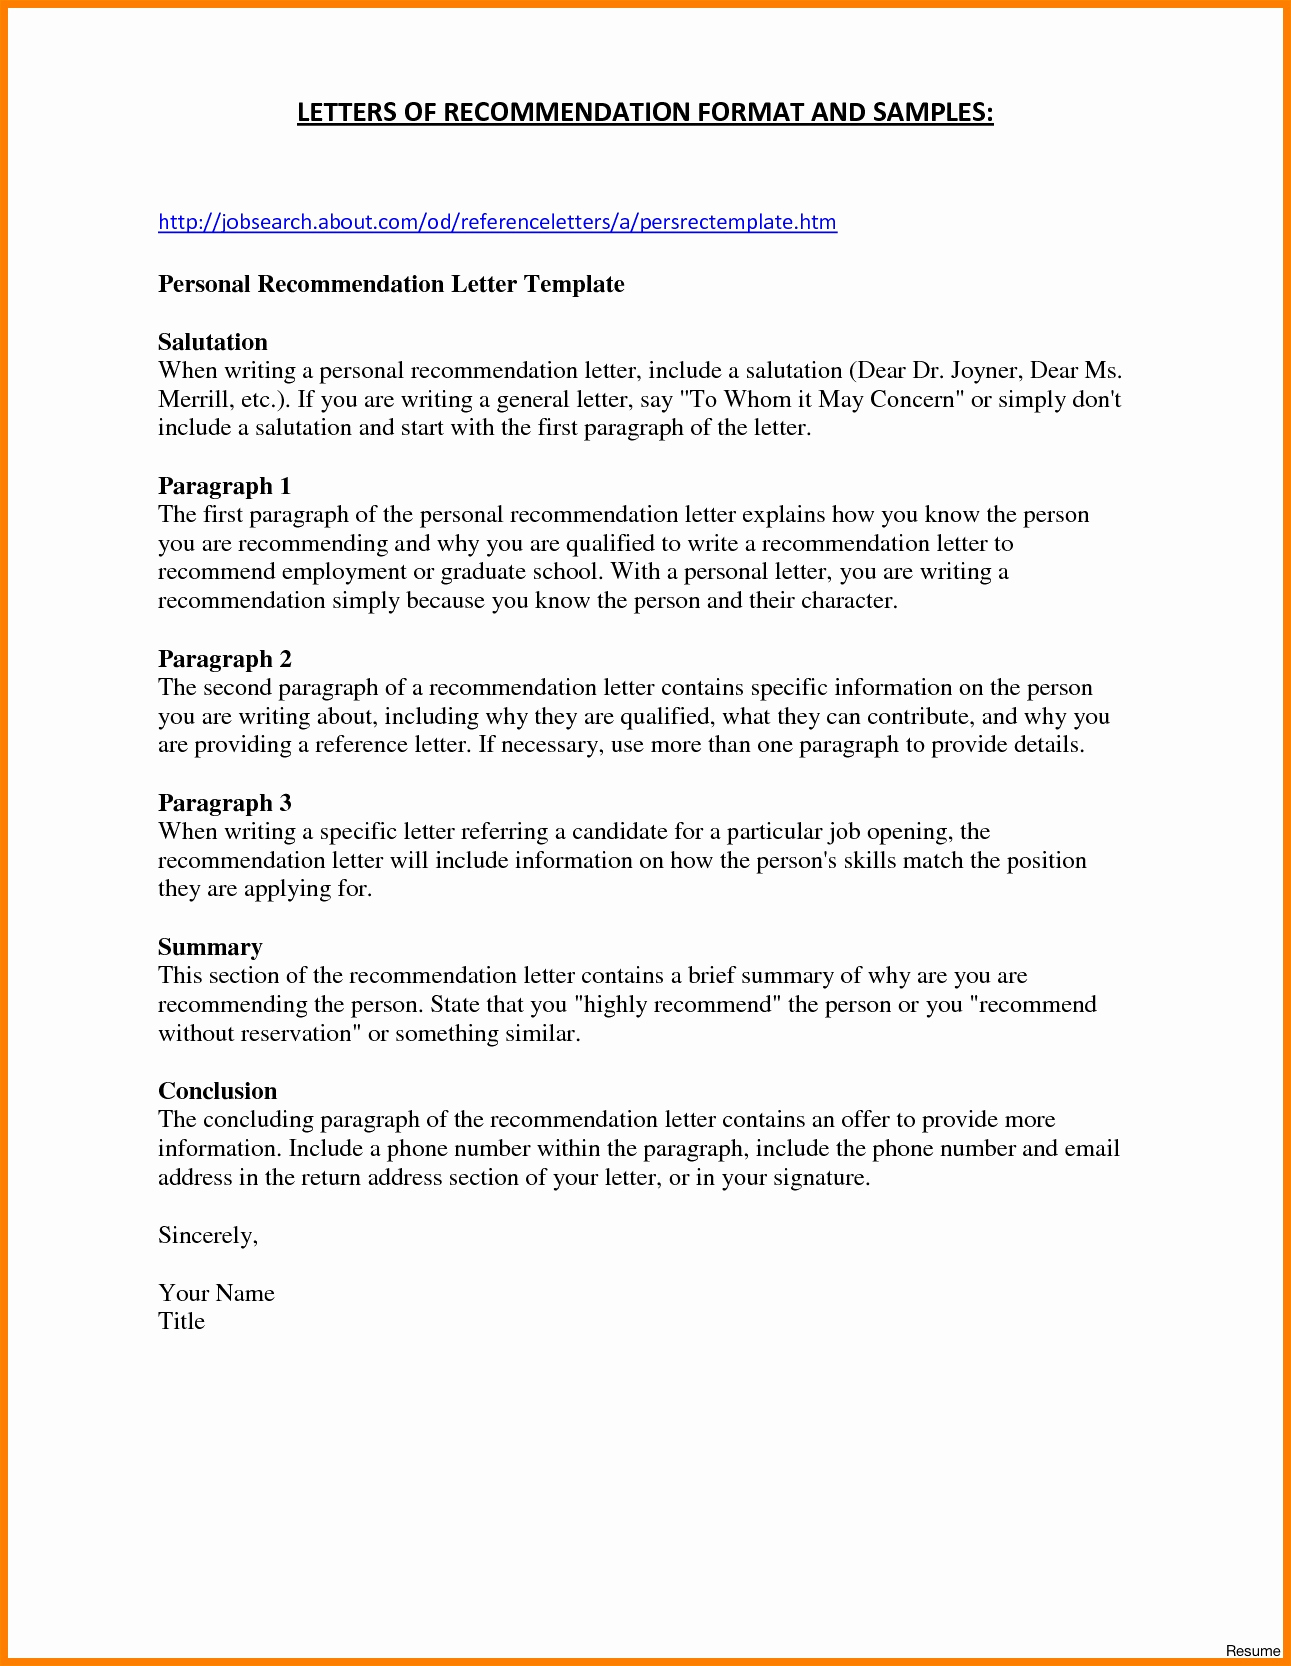 Information Technology Cover Letter Template - Cover Letter Examples for Information Technology New Resume Writing